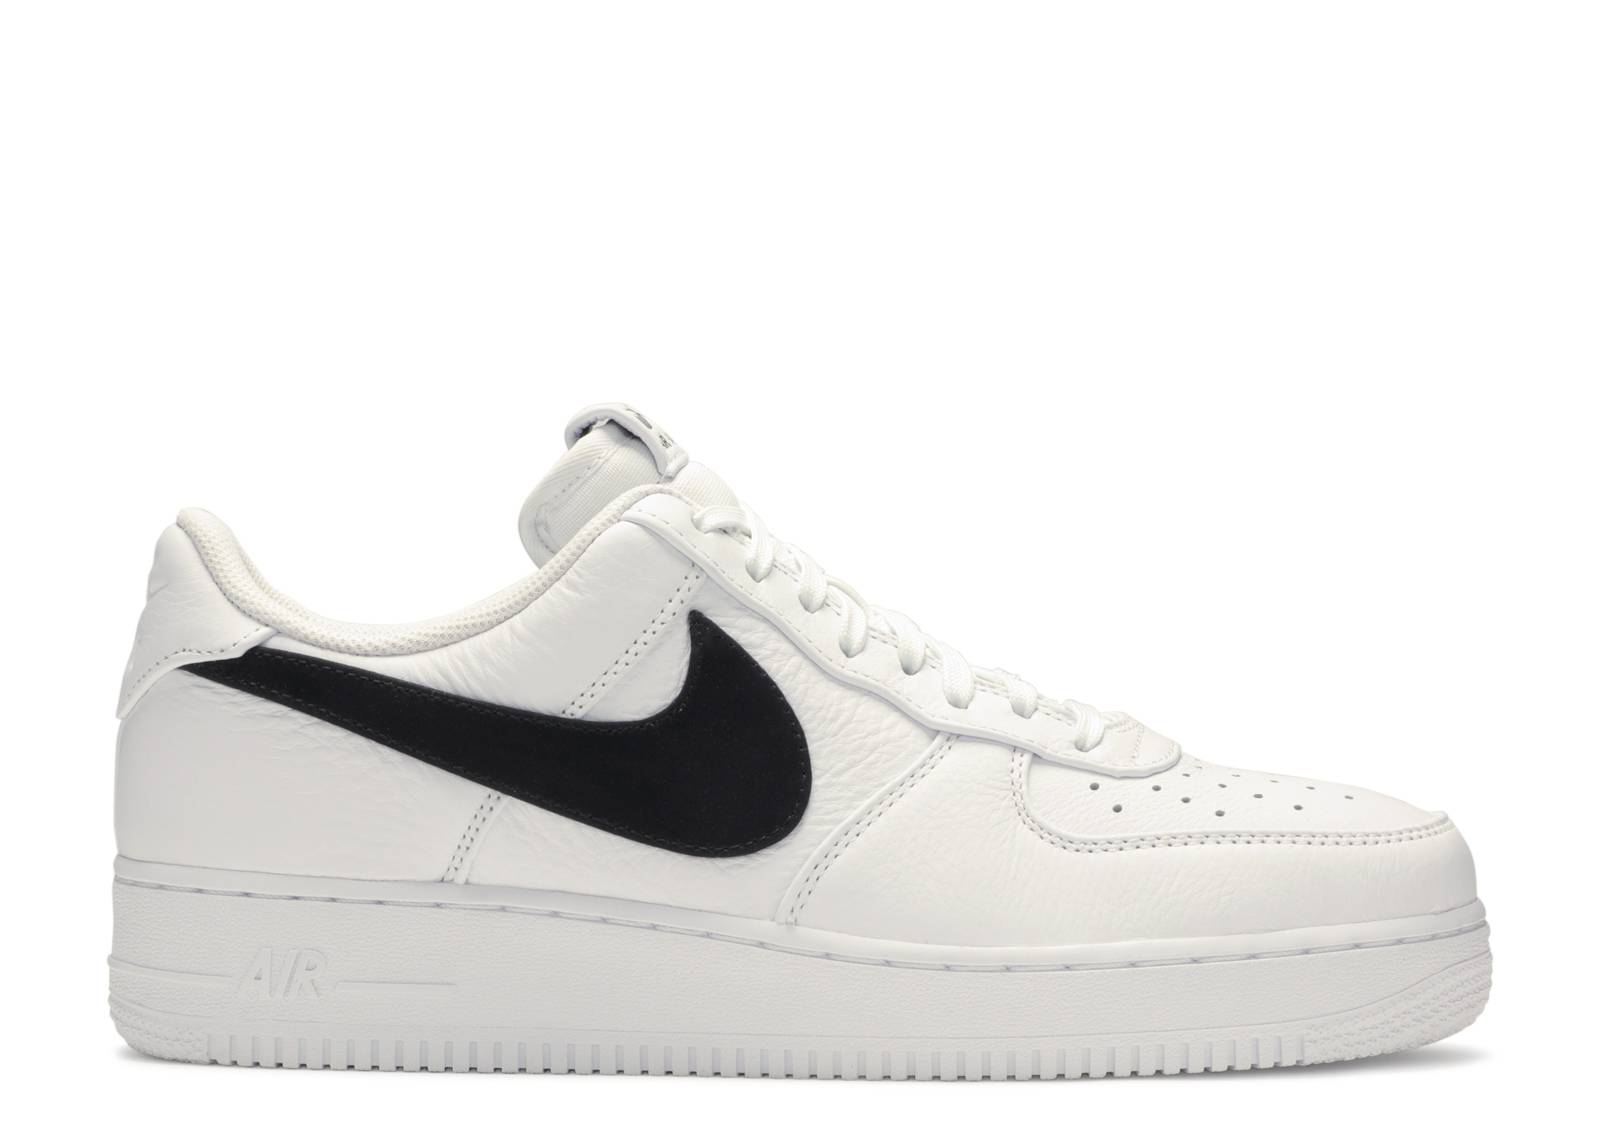 Nike Air Force 1 '07 Premium 2 Trainers AT4143 103 | White